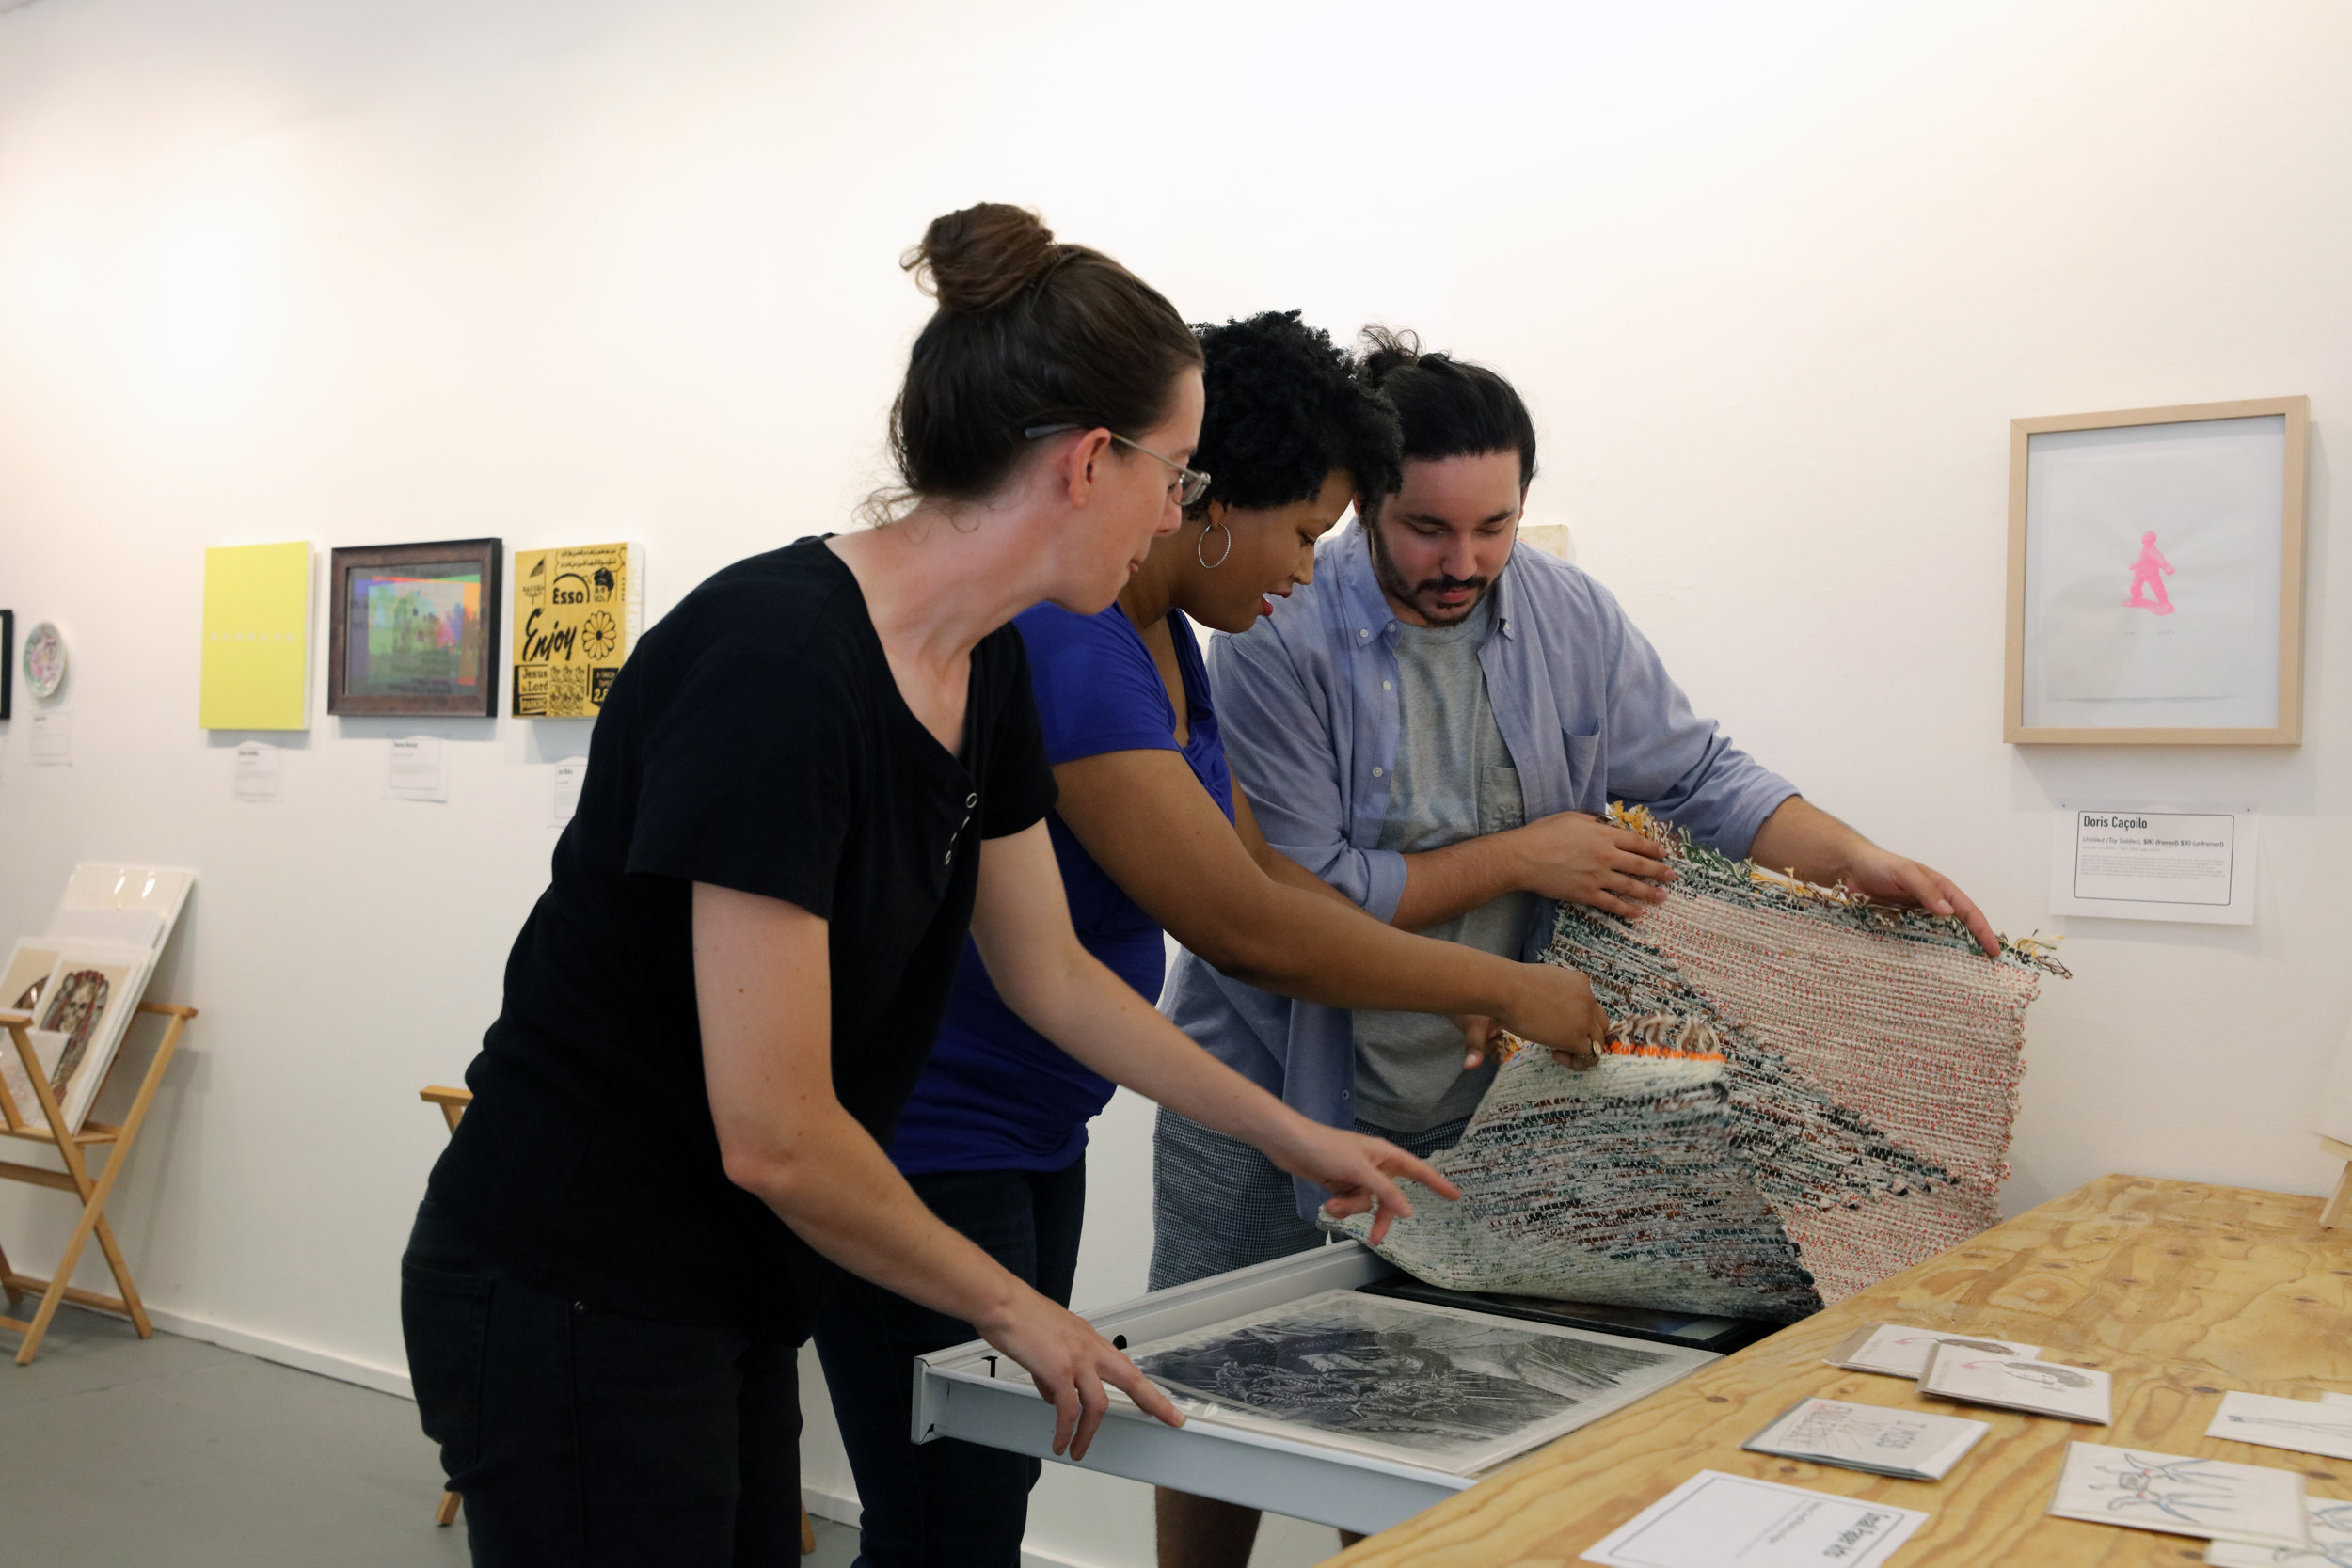 Co-Director Emma Wilcox, Gallery Manager Candace Nicholson, and Registrar Juno Zago  | Photo Credit: Anthony Alvarez